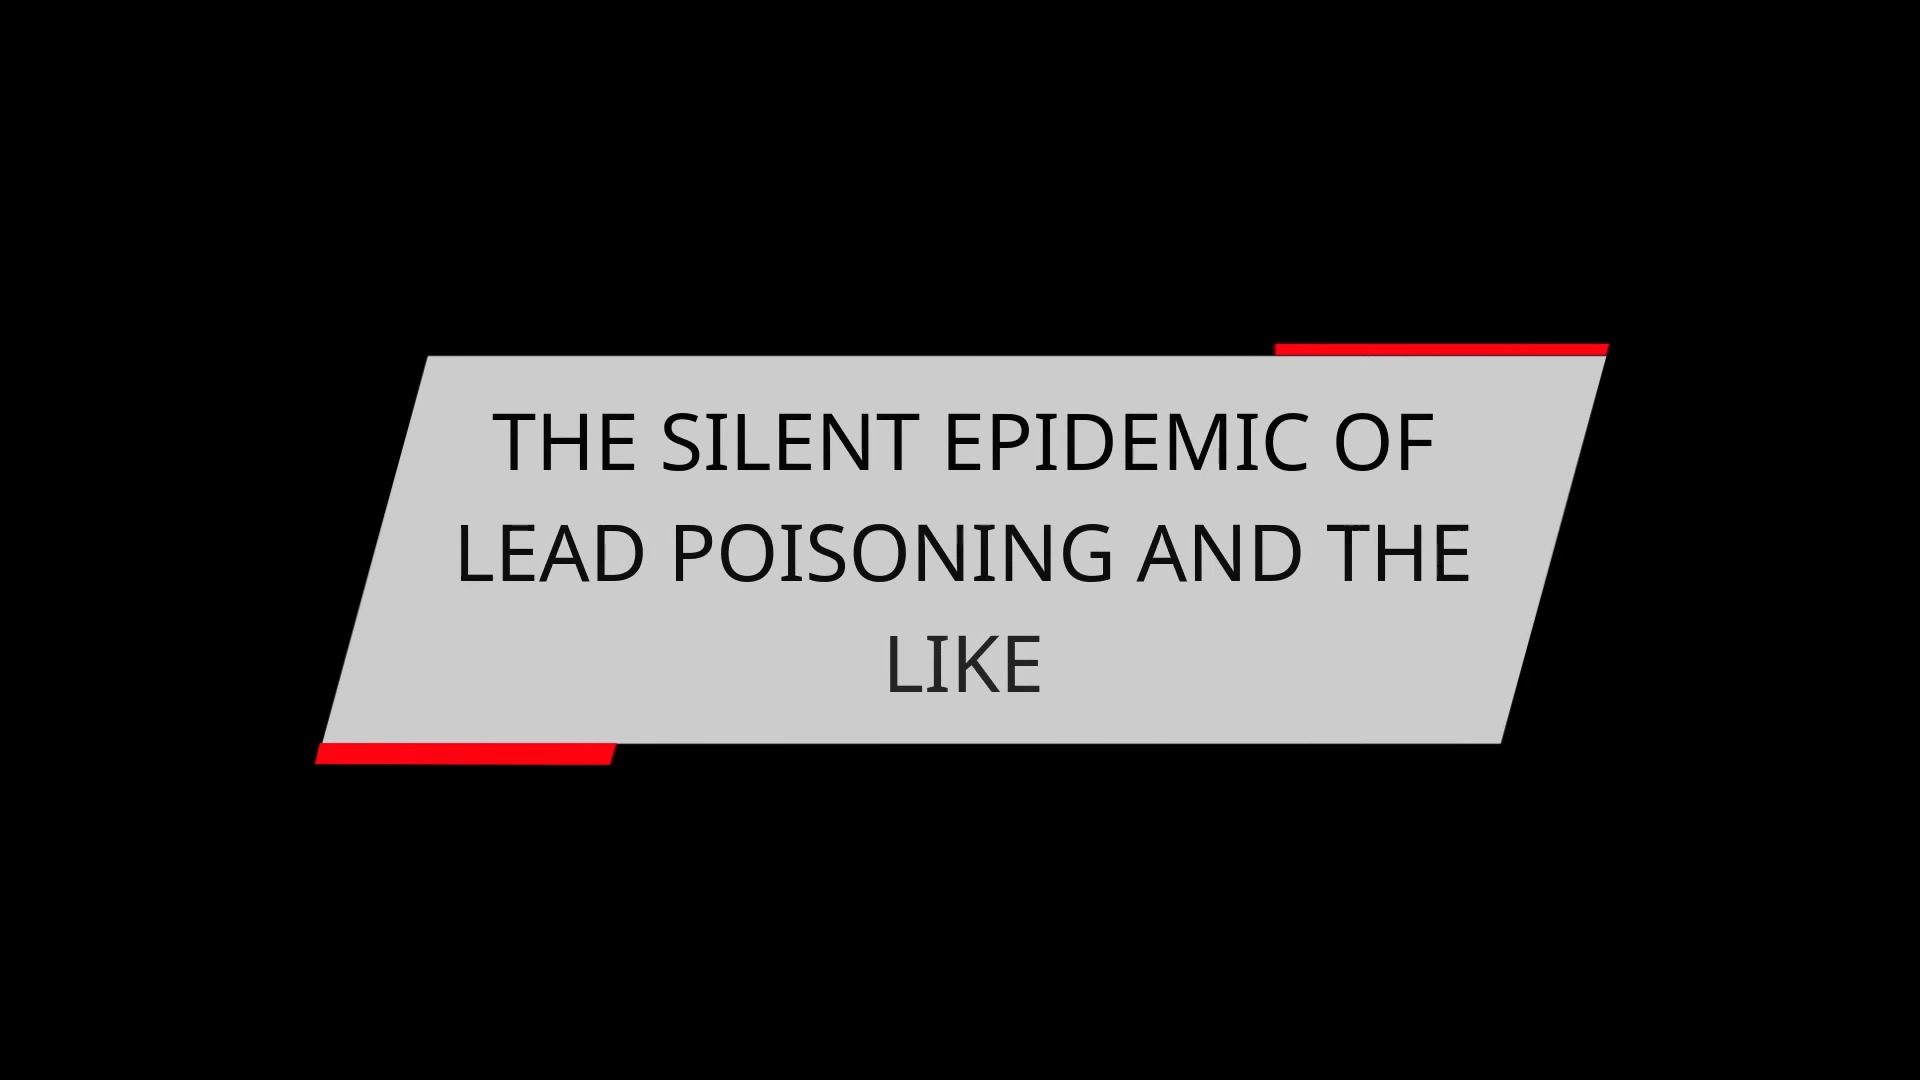 THE SILENT EPIDEMIC OF LEAD POISONING AND THE LIKE